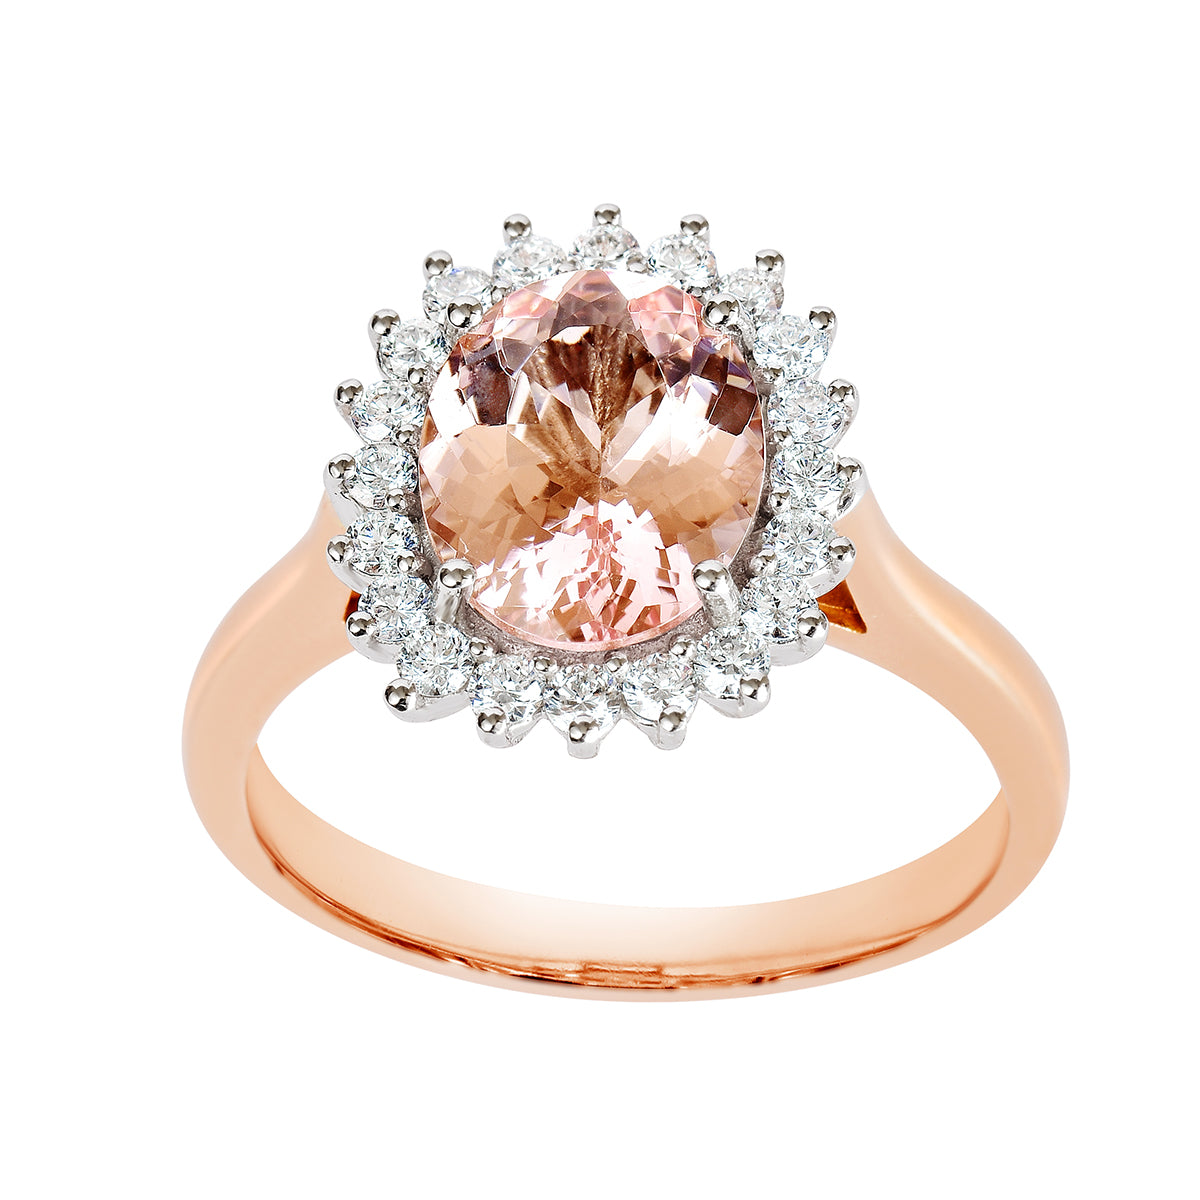 18K SOLID ROSE GOLD 2.27CT NATURAL OVAL MORGANITE HALO RING WITH 20 VS/G DIAMONDS.